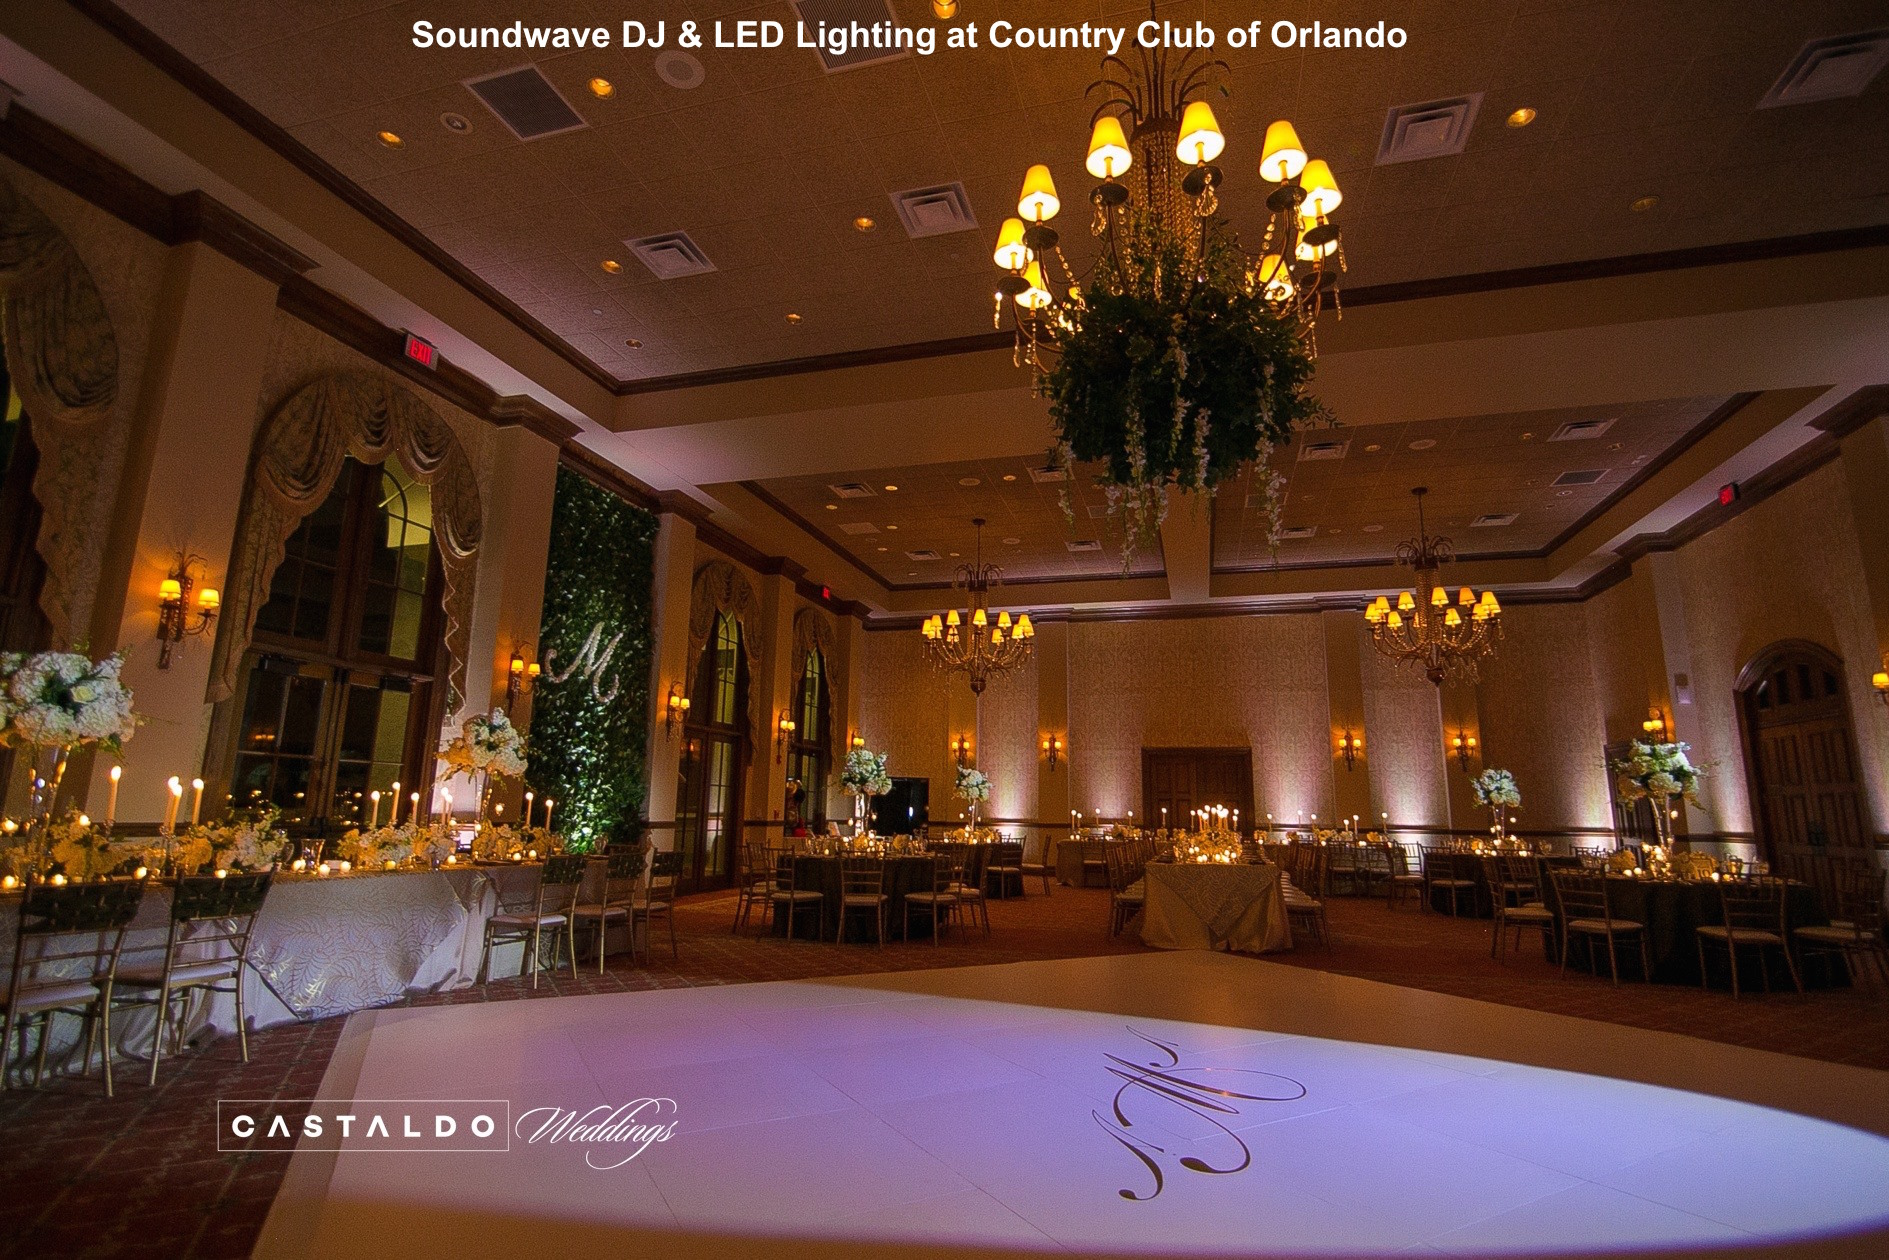 soundwave entertainment - country club of orlando - wedding blog - orlando, fl